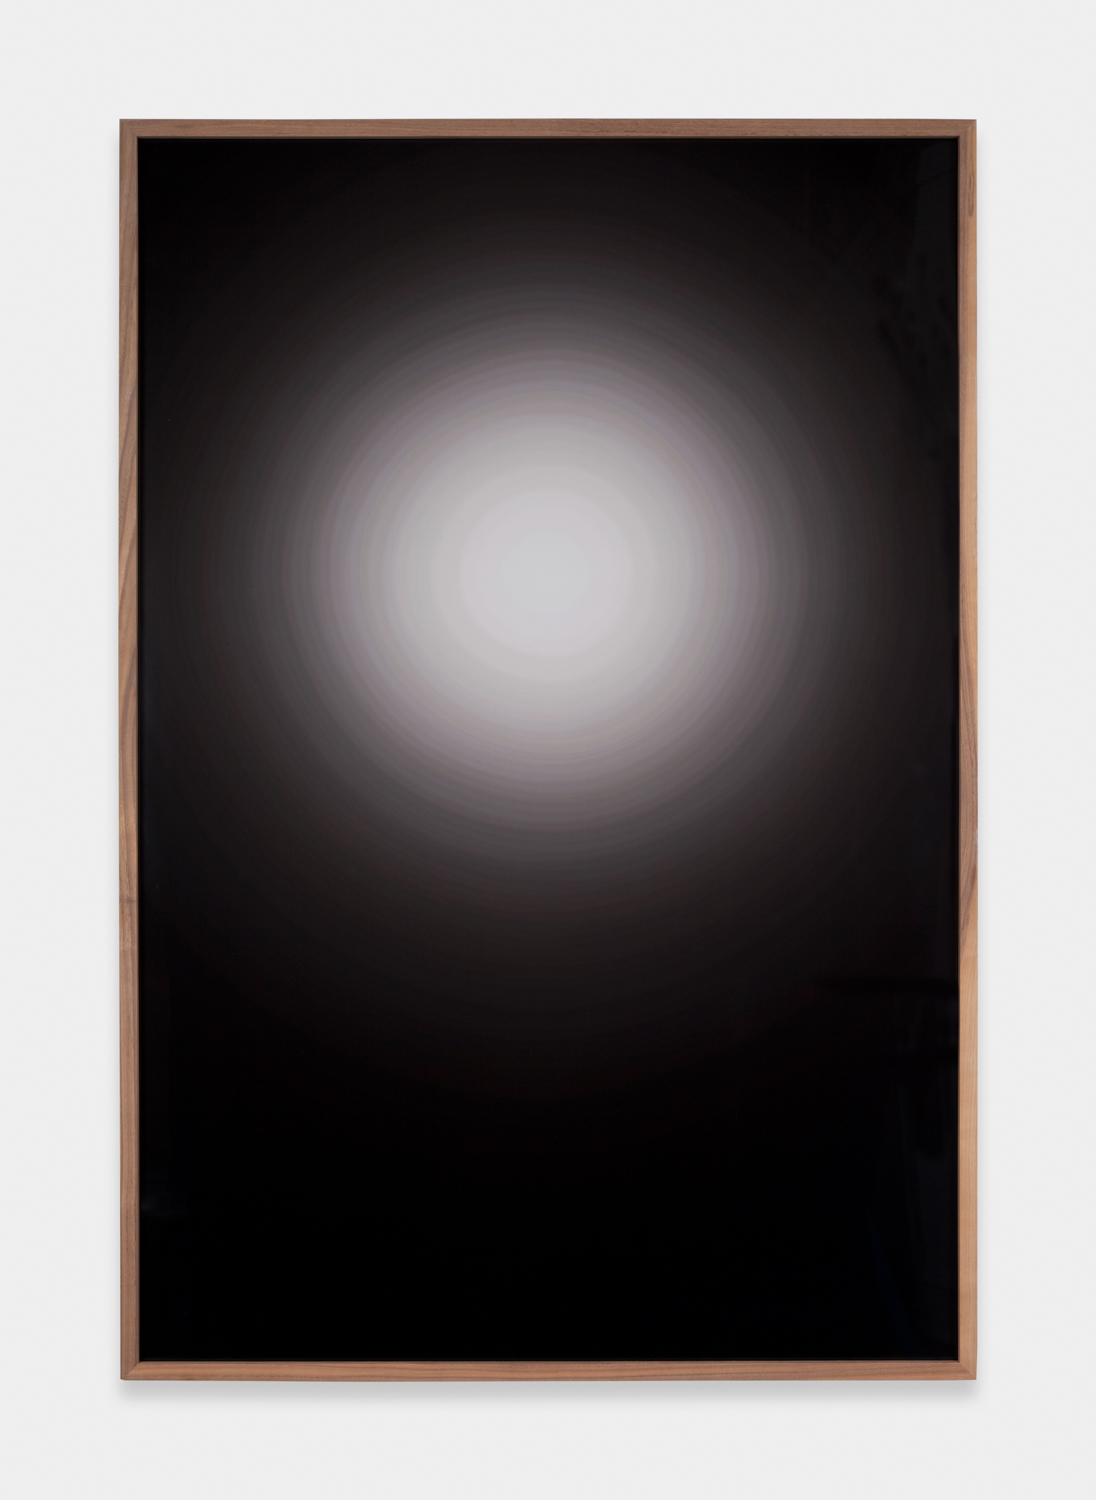 Anthony Pearson  Untitled (Flare)  2011 C-print in artist's frame 53h x 37w x 1 ½d in AP283